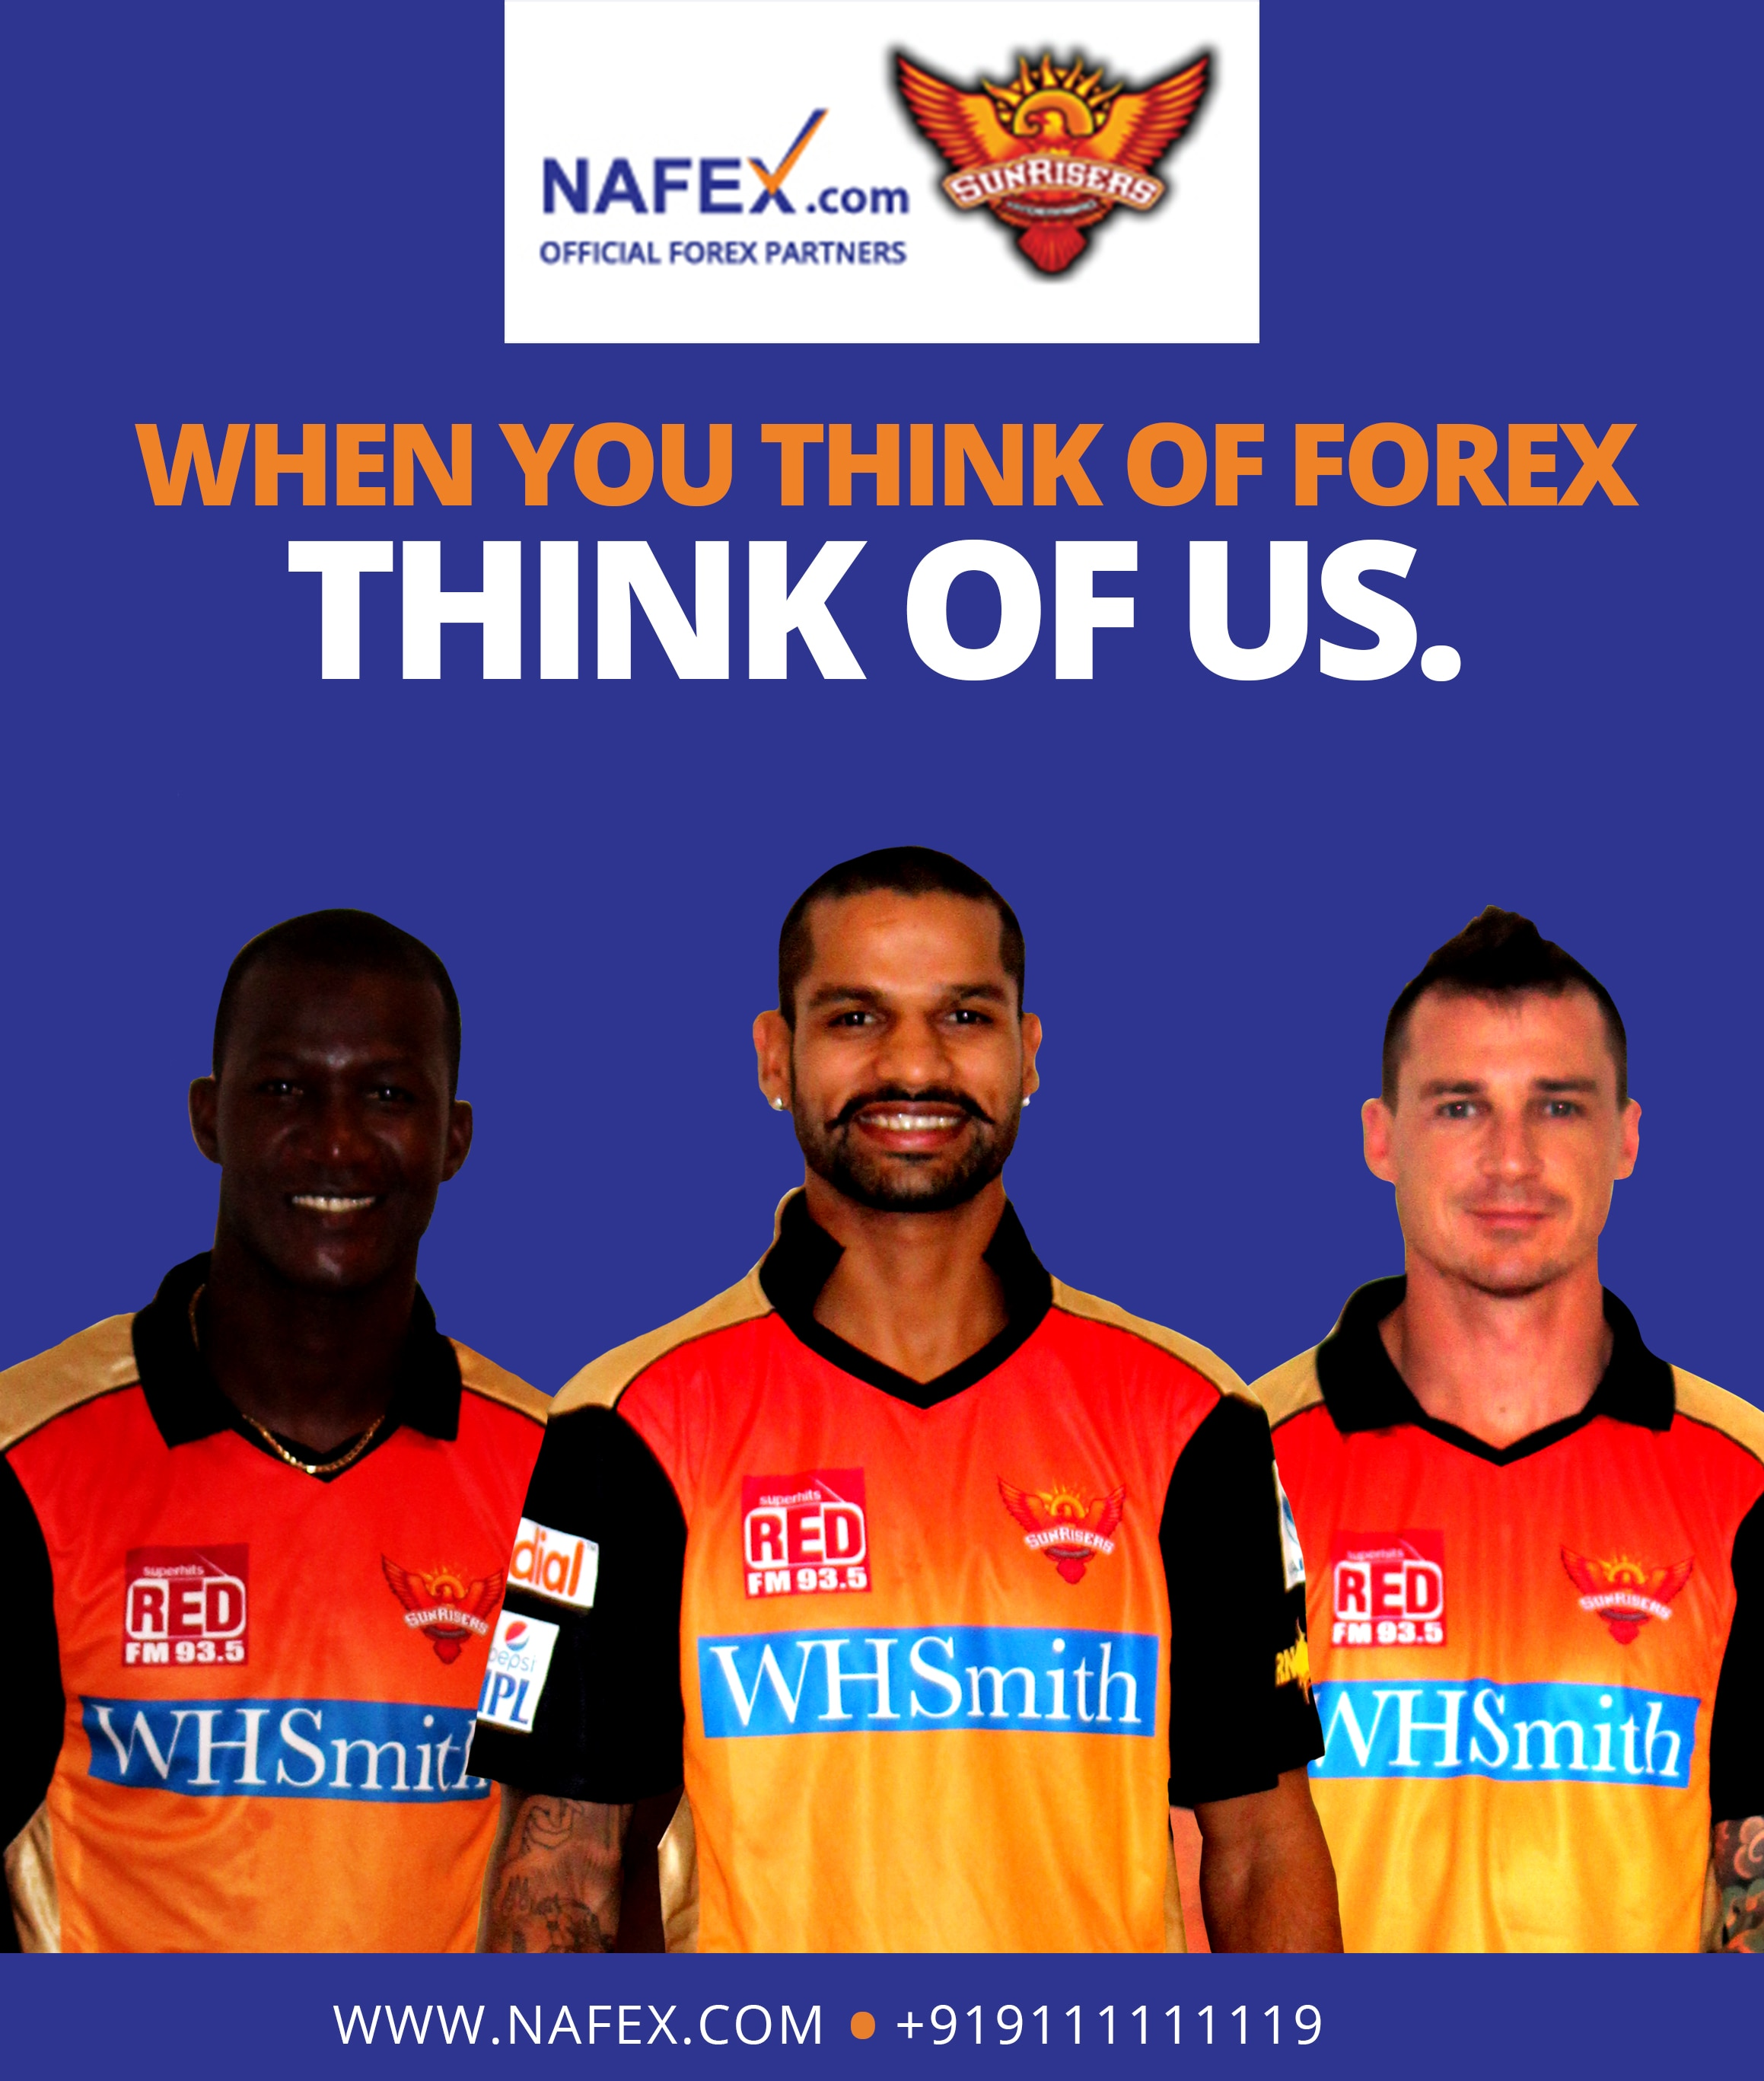 Nafex - Malabar Hills Foreign Currency Exchange Dealers Agents Malabar Hills, Online Travellers Cheque & Forex Prepaid Card